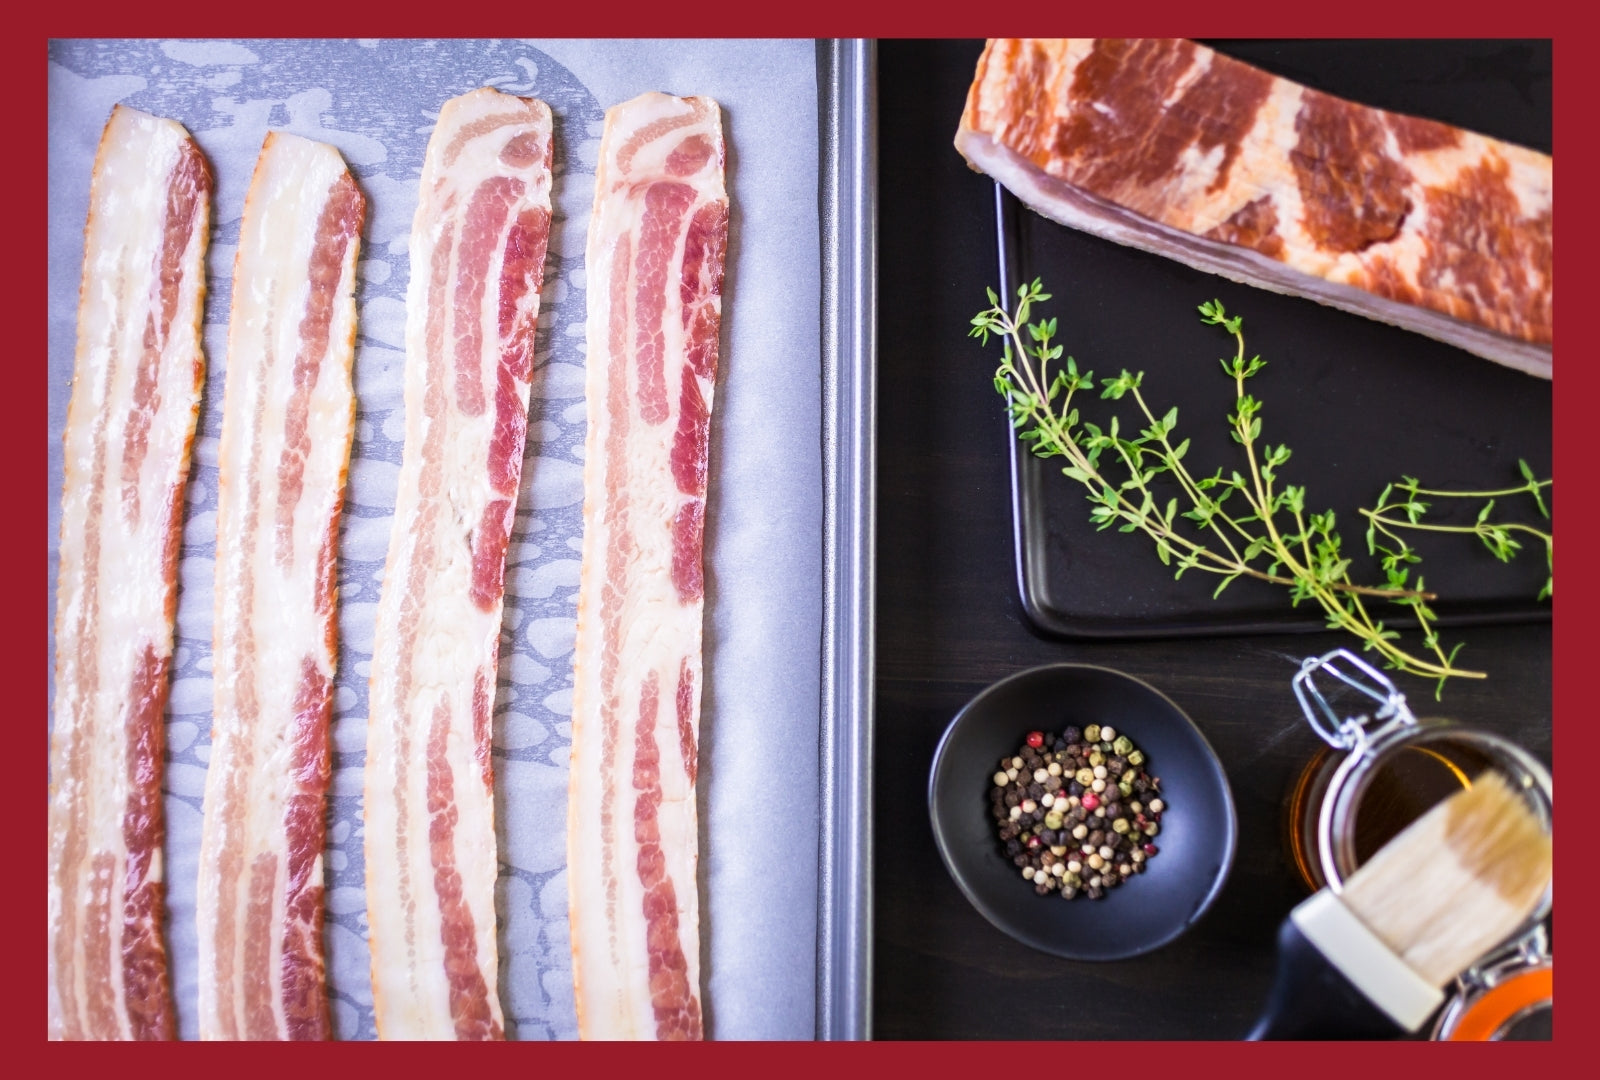 Bacon strips on a baking sheet lined with parchment paper to show how the bacon is prepared to cook in the oven.